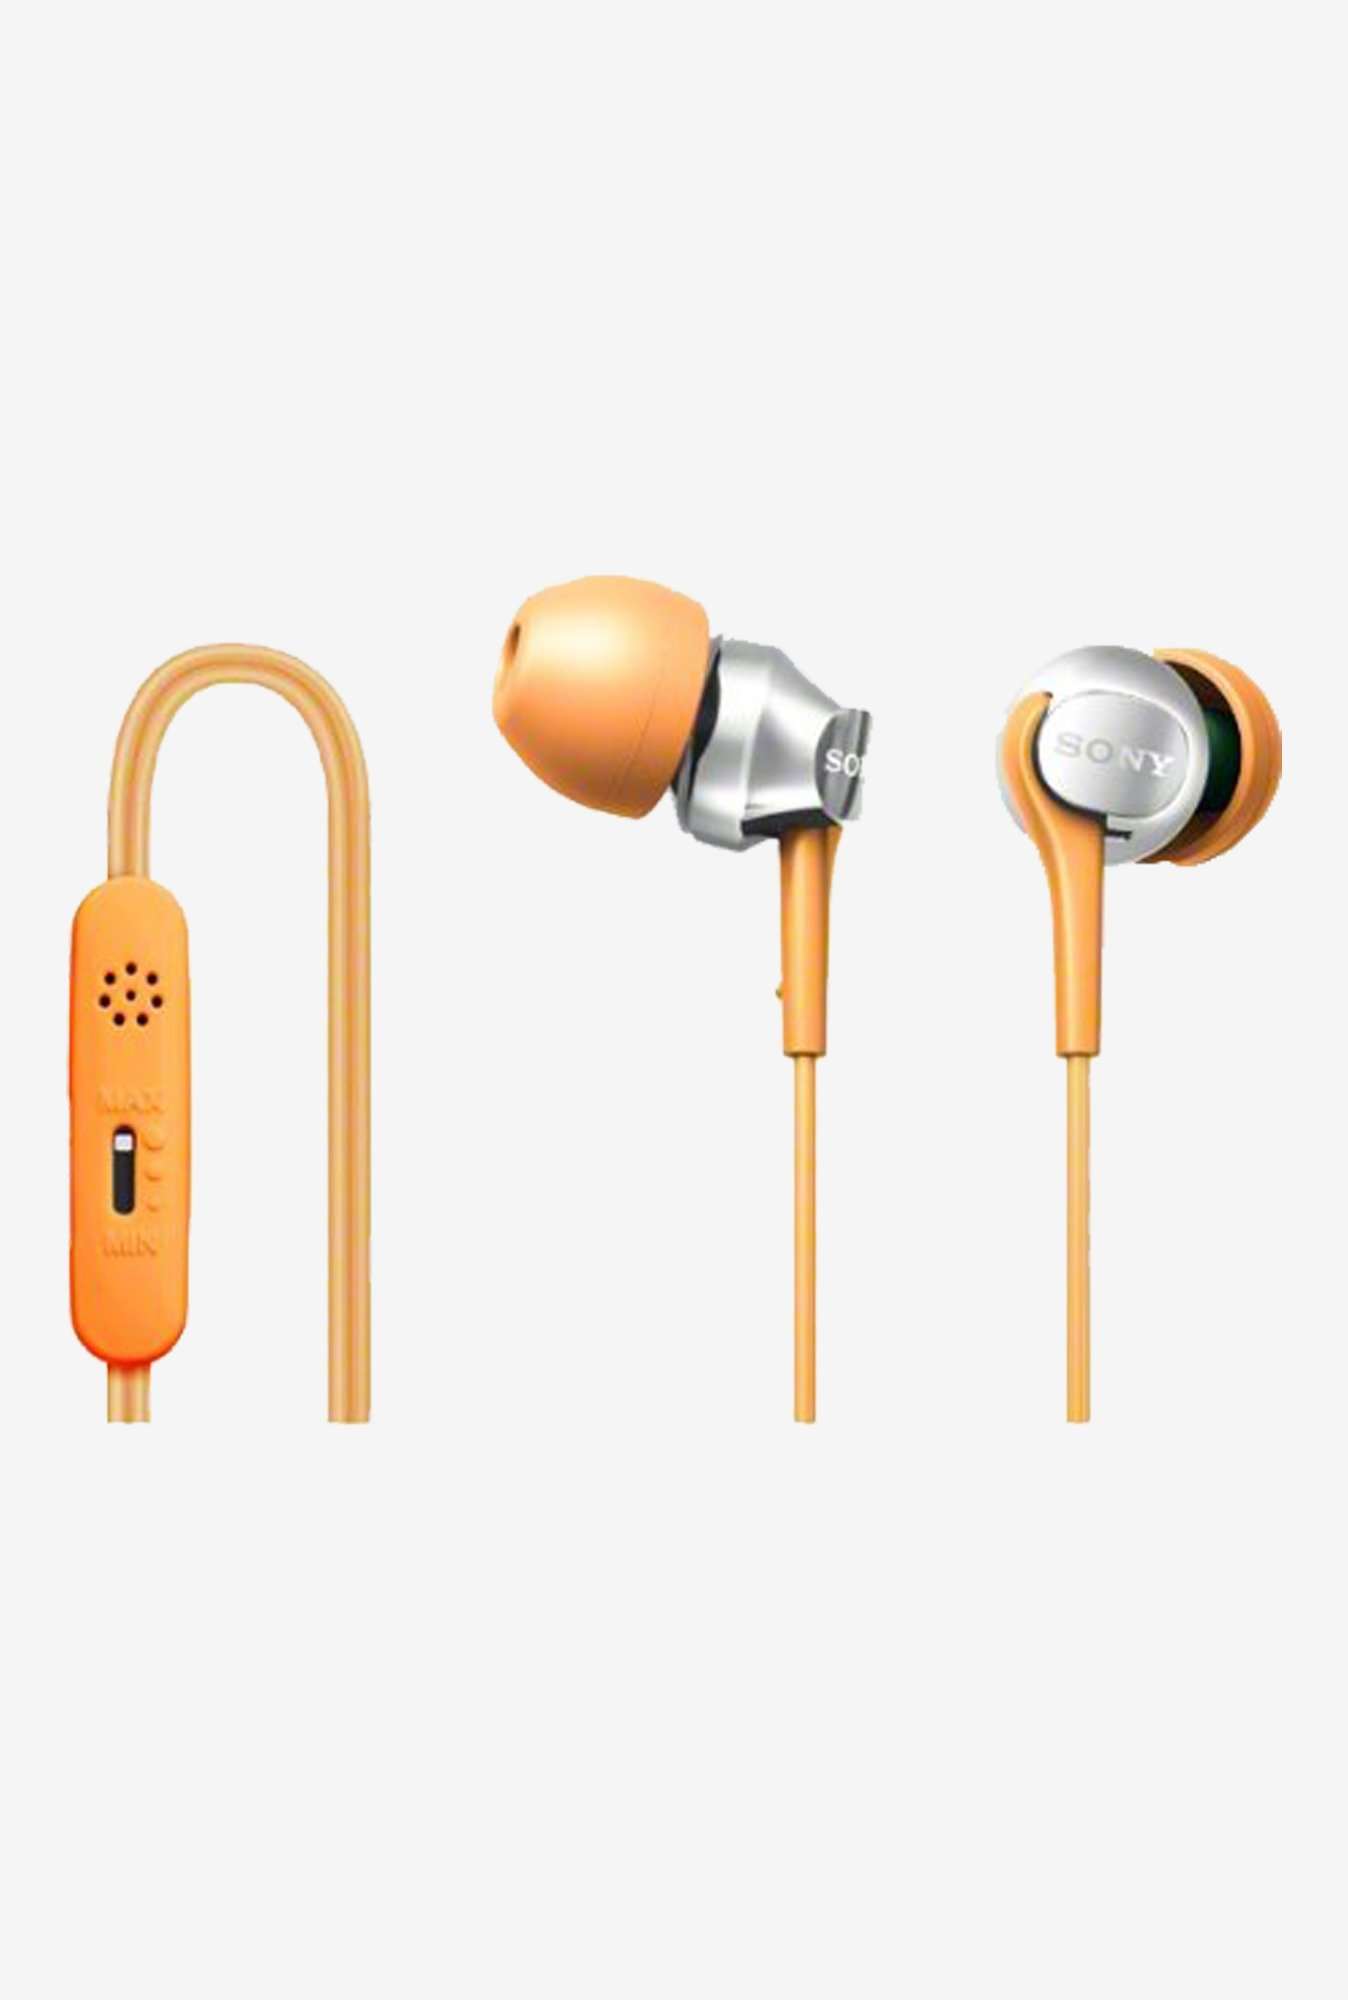 SONY DR-EX102VP-D In the Ear Headphones (Orange)